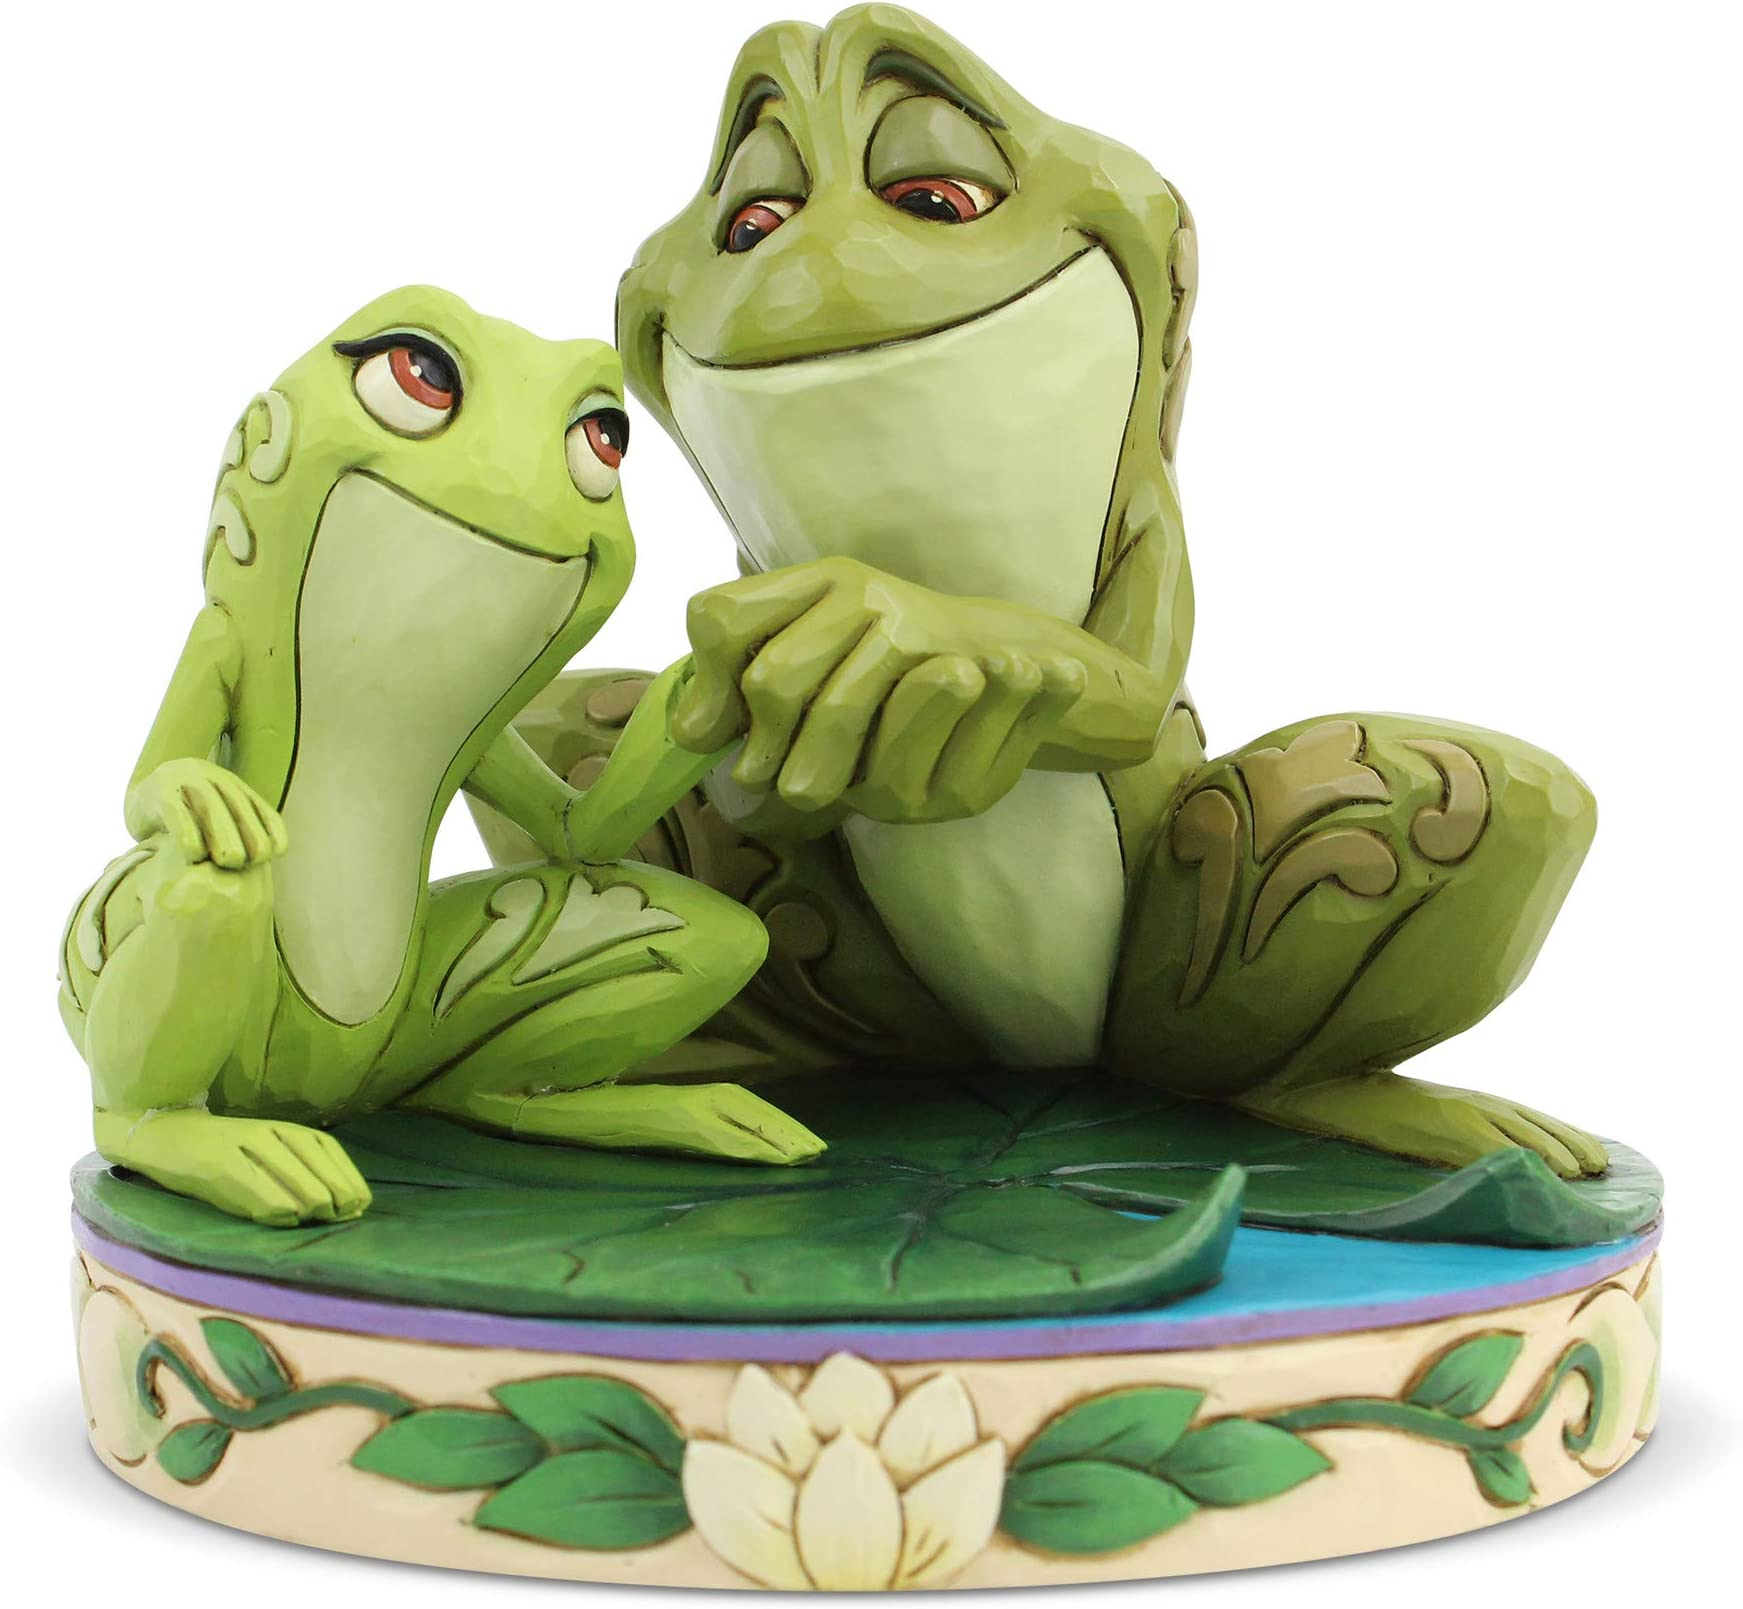 Disney Jim Shore 2019 Princess and the Frog TIANA /& NAVEEN as Frogs Figurine